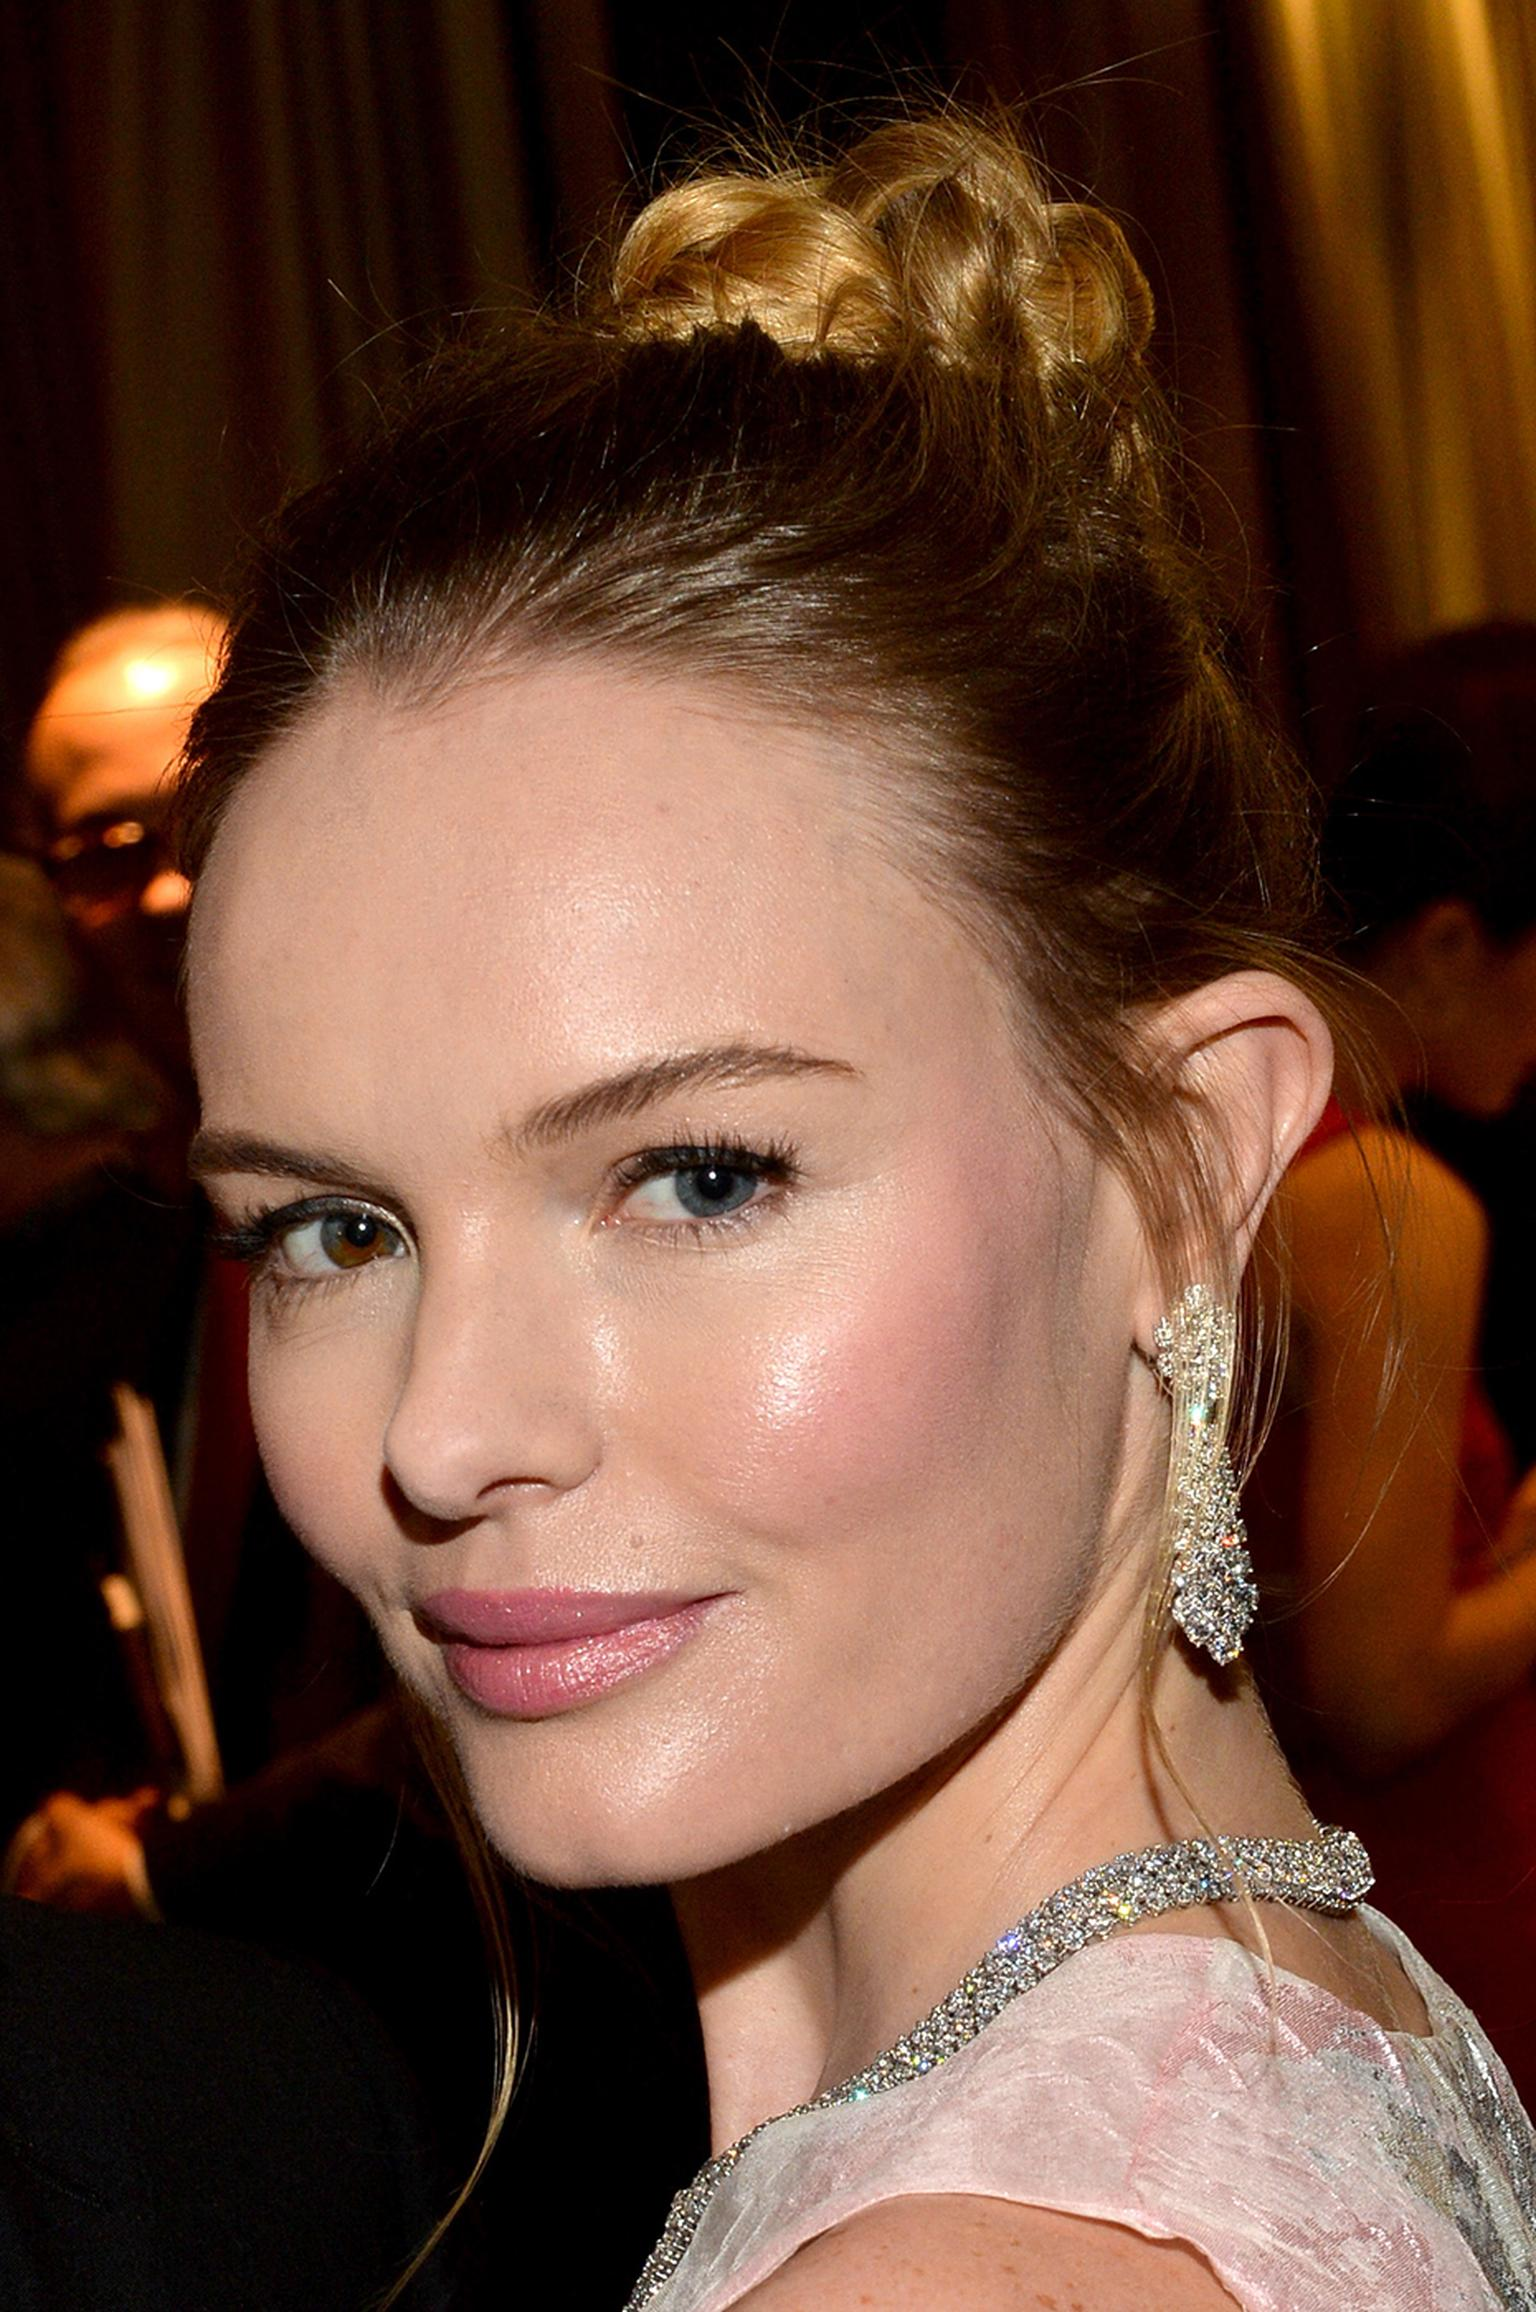 Kate Bosworth wore an elegant trio of Van Cleef & Arpels diamond jewels - earrings, a necklace and a bracelet